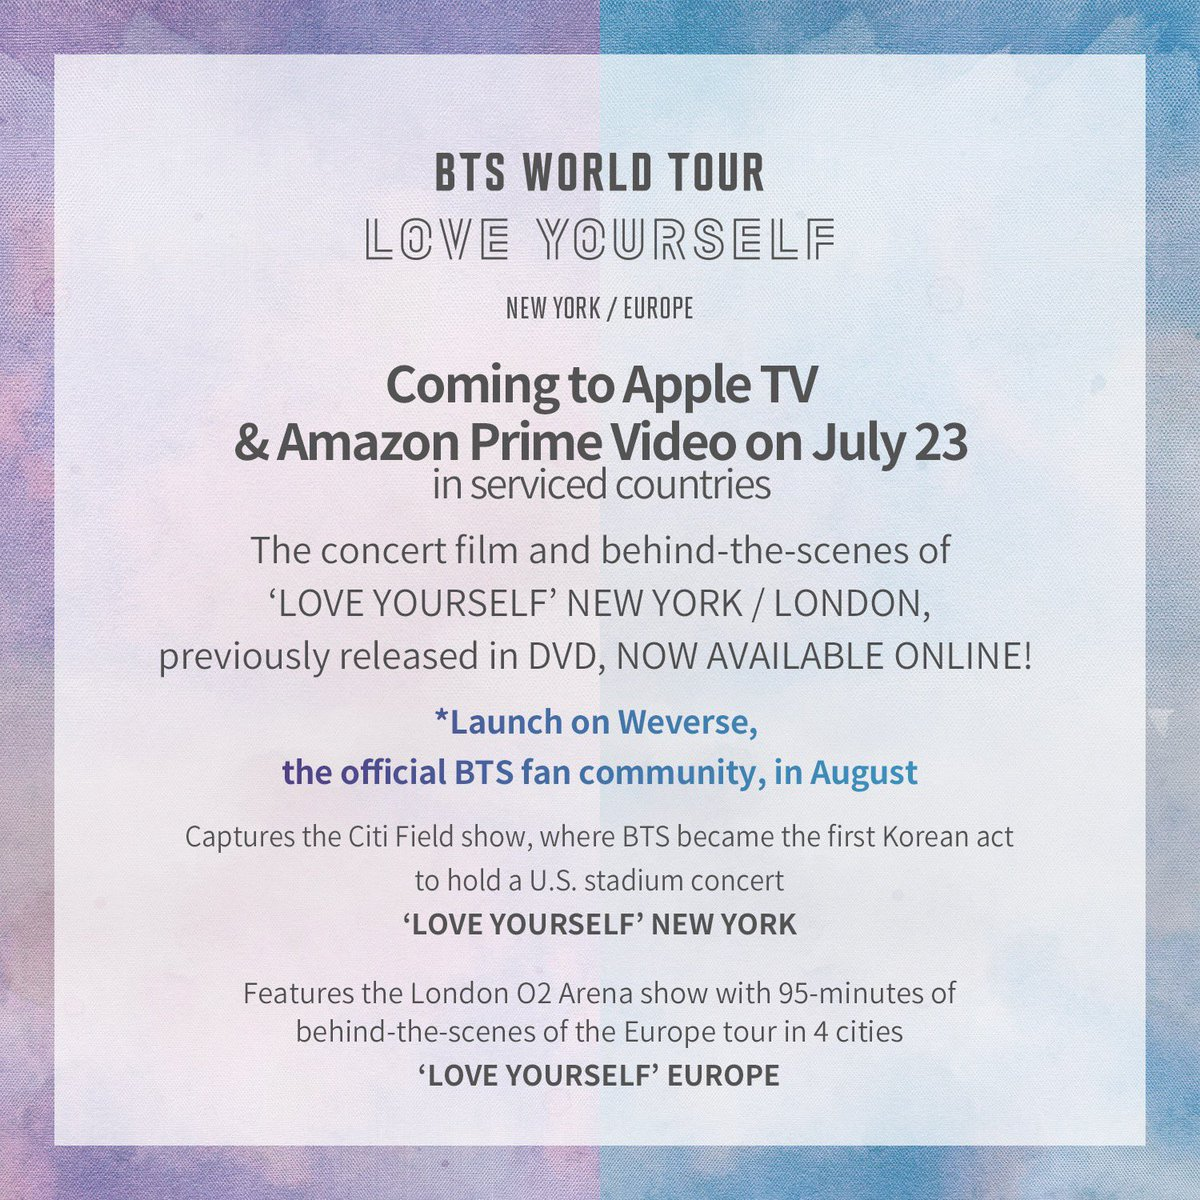 BTS WORLD TOUR 'LOVE YOURSELF' NEW YORK / EUROPE — US BTS ARMY